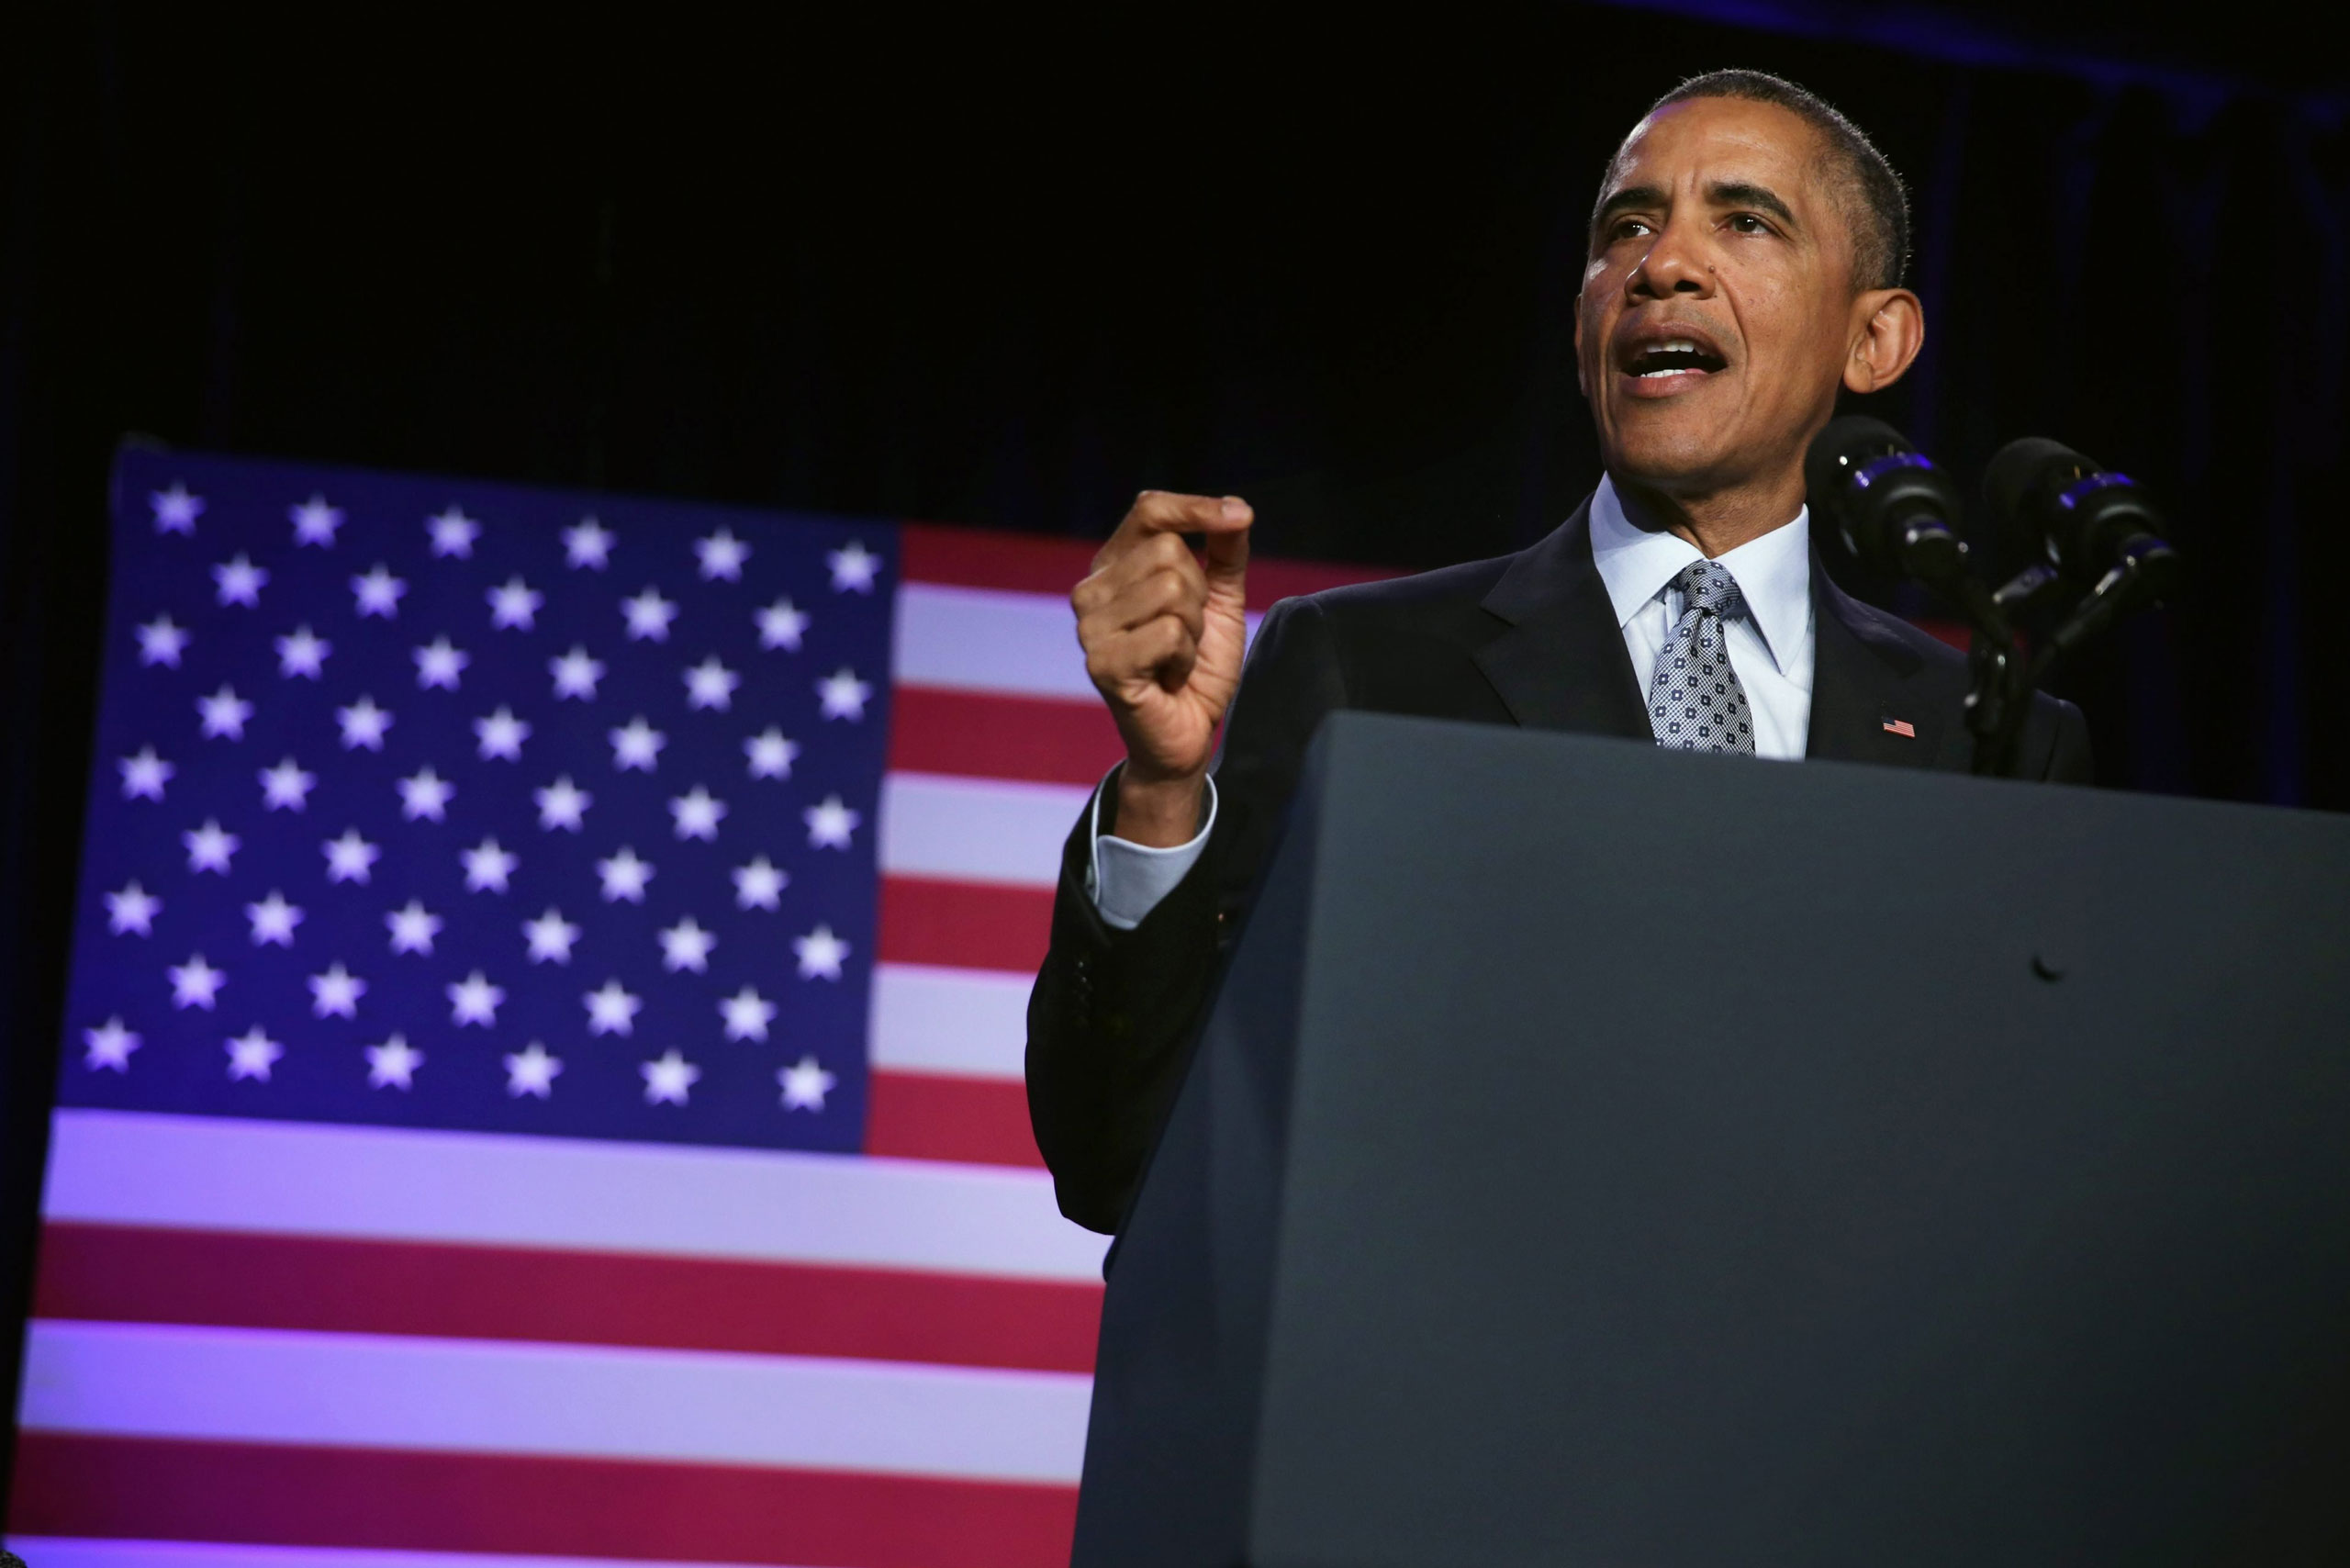 US President Barack Obama speaks during the General Session of the 2015 DNC Winter Meeting in Washington, D.C., on Feb. 20, 2015.